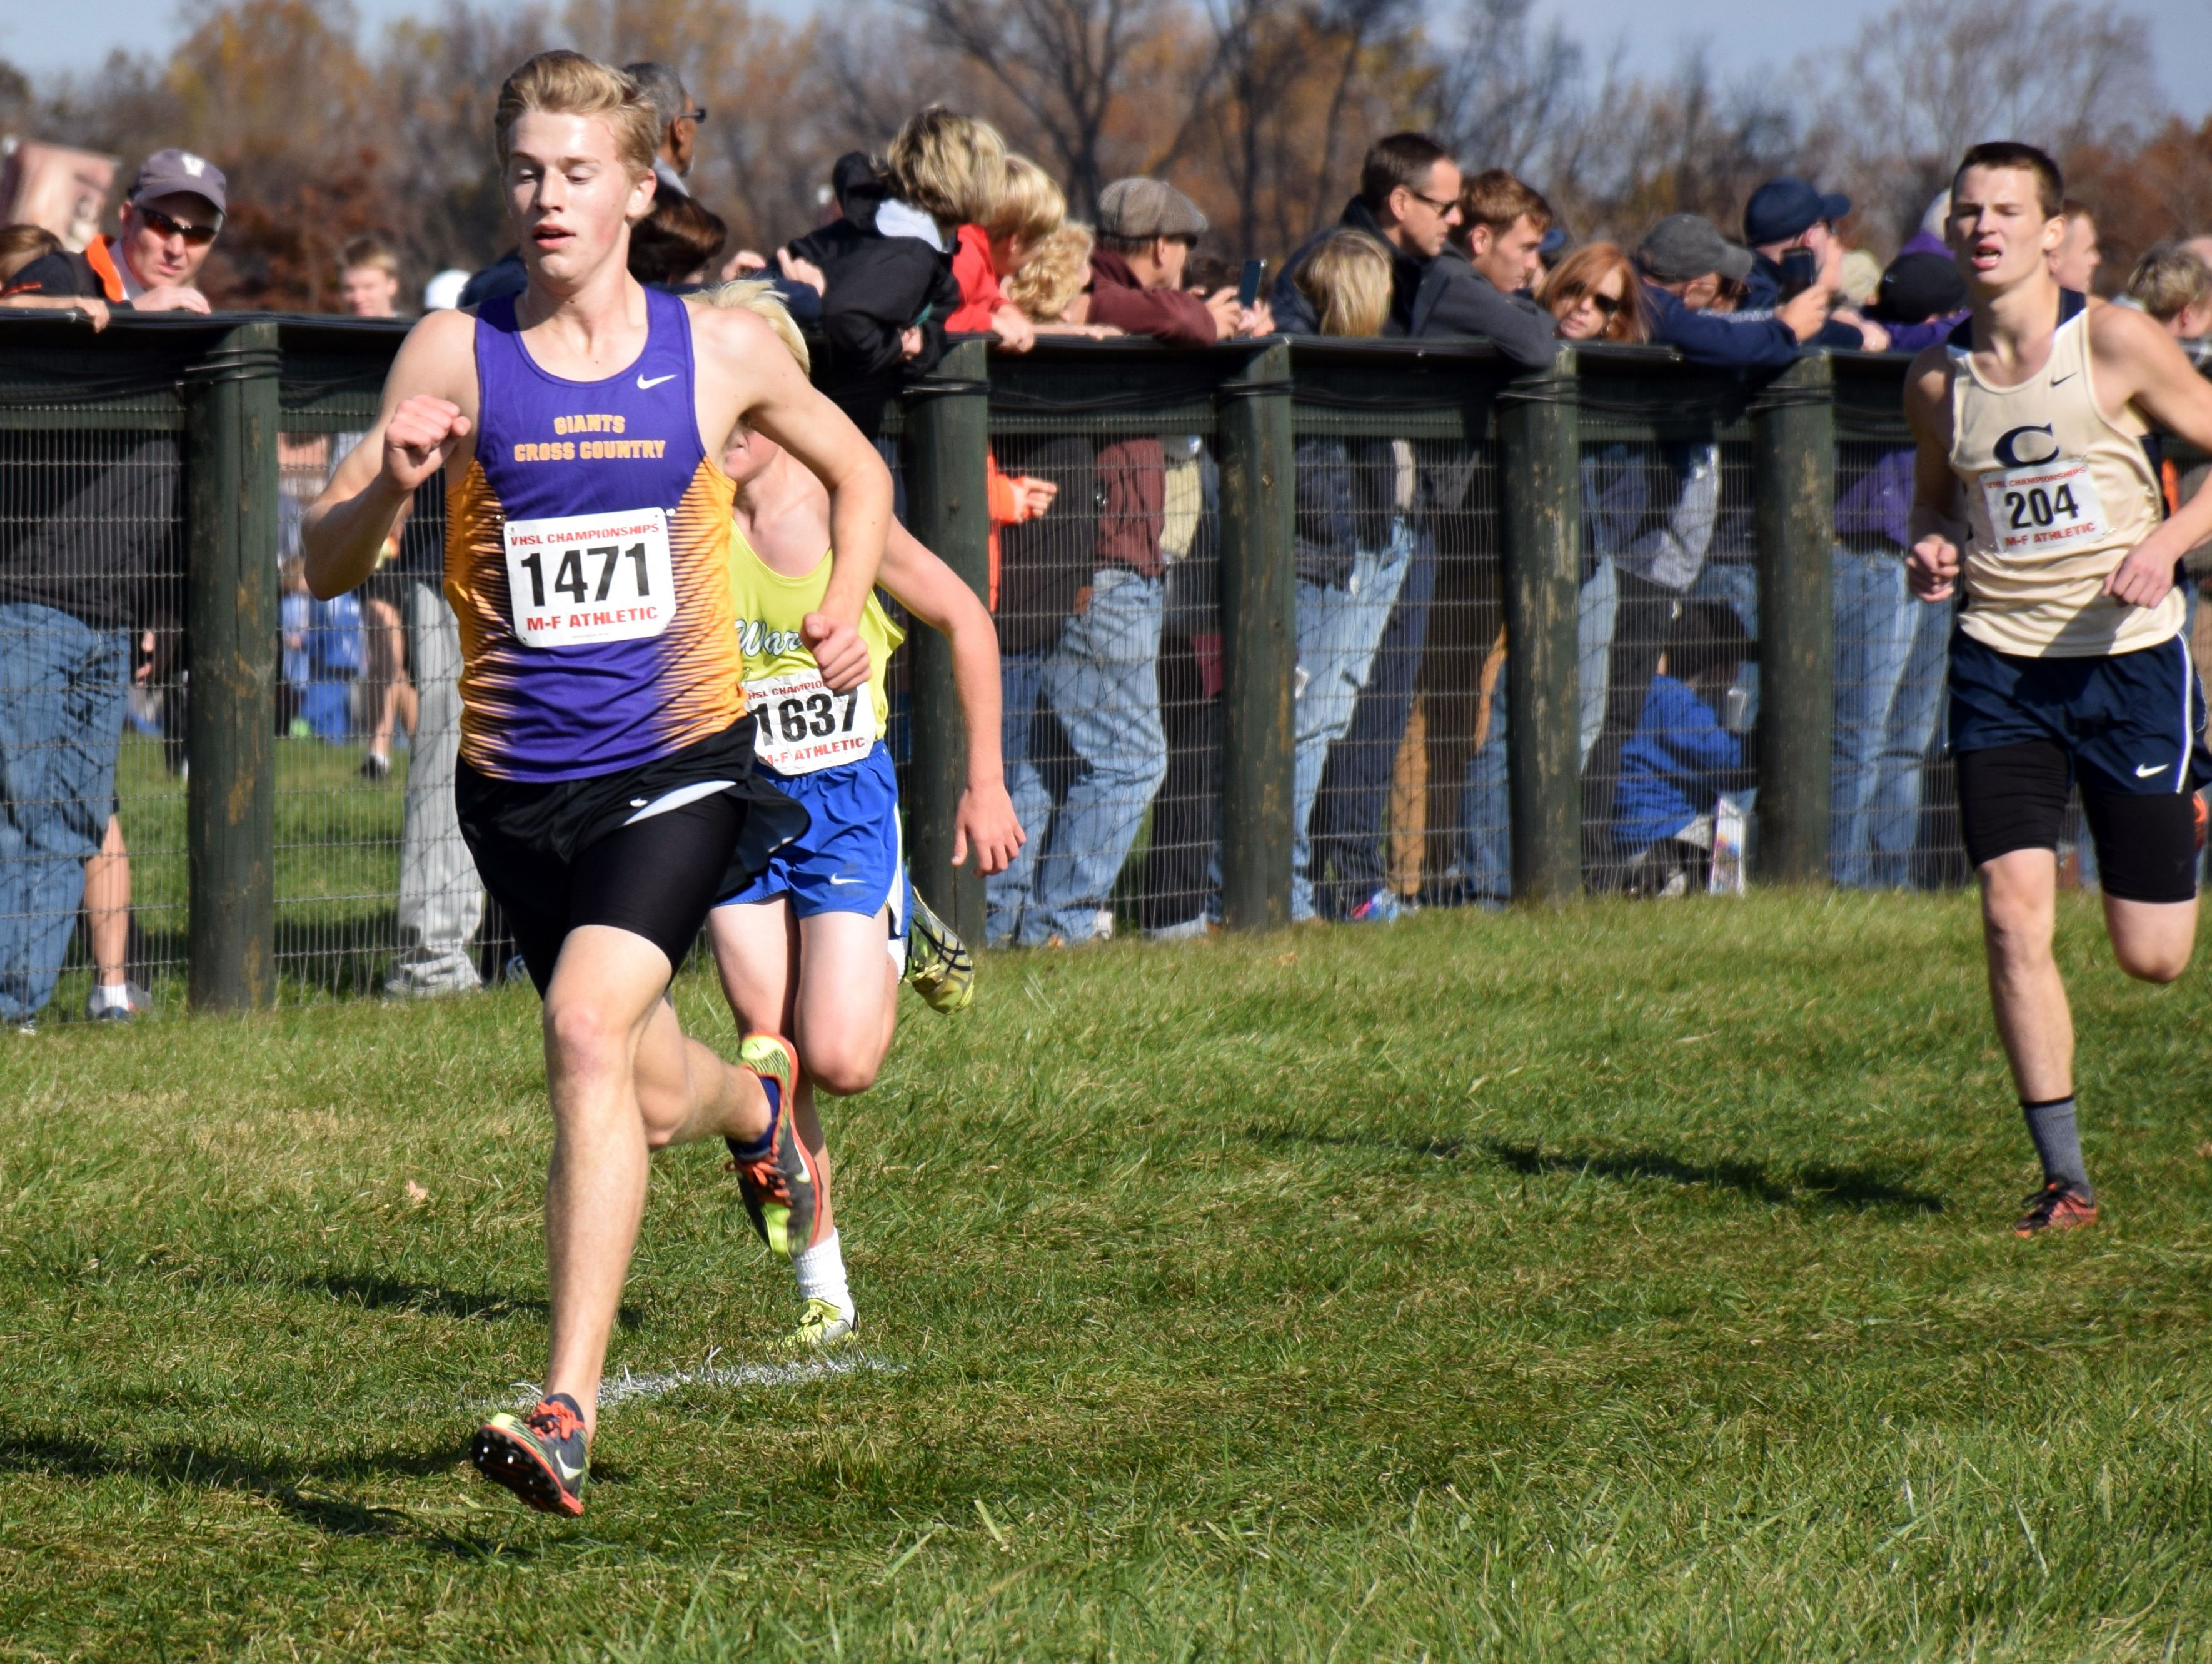 Waynesboro's Chandler Showalter approaches the finish line of the Group 3A boys race at the VHSL cross country championships at Great Meadow in The Plains on Friday, Nov. 11, 2016.